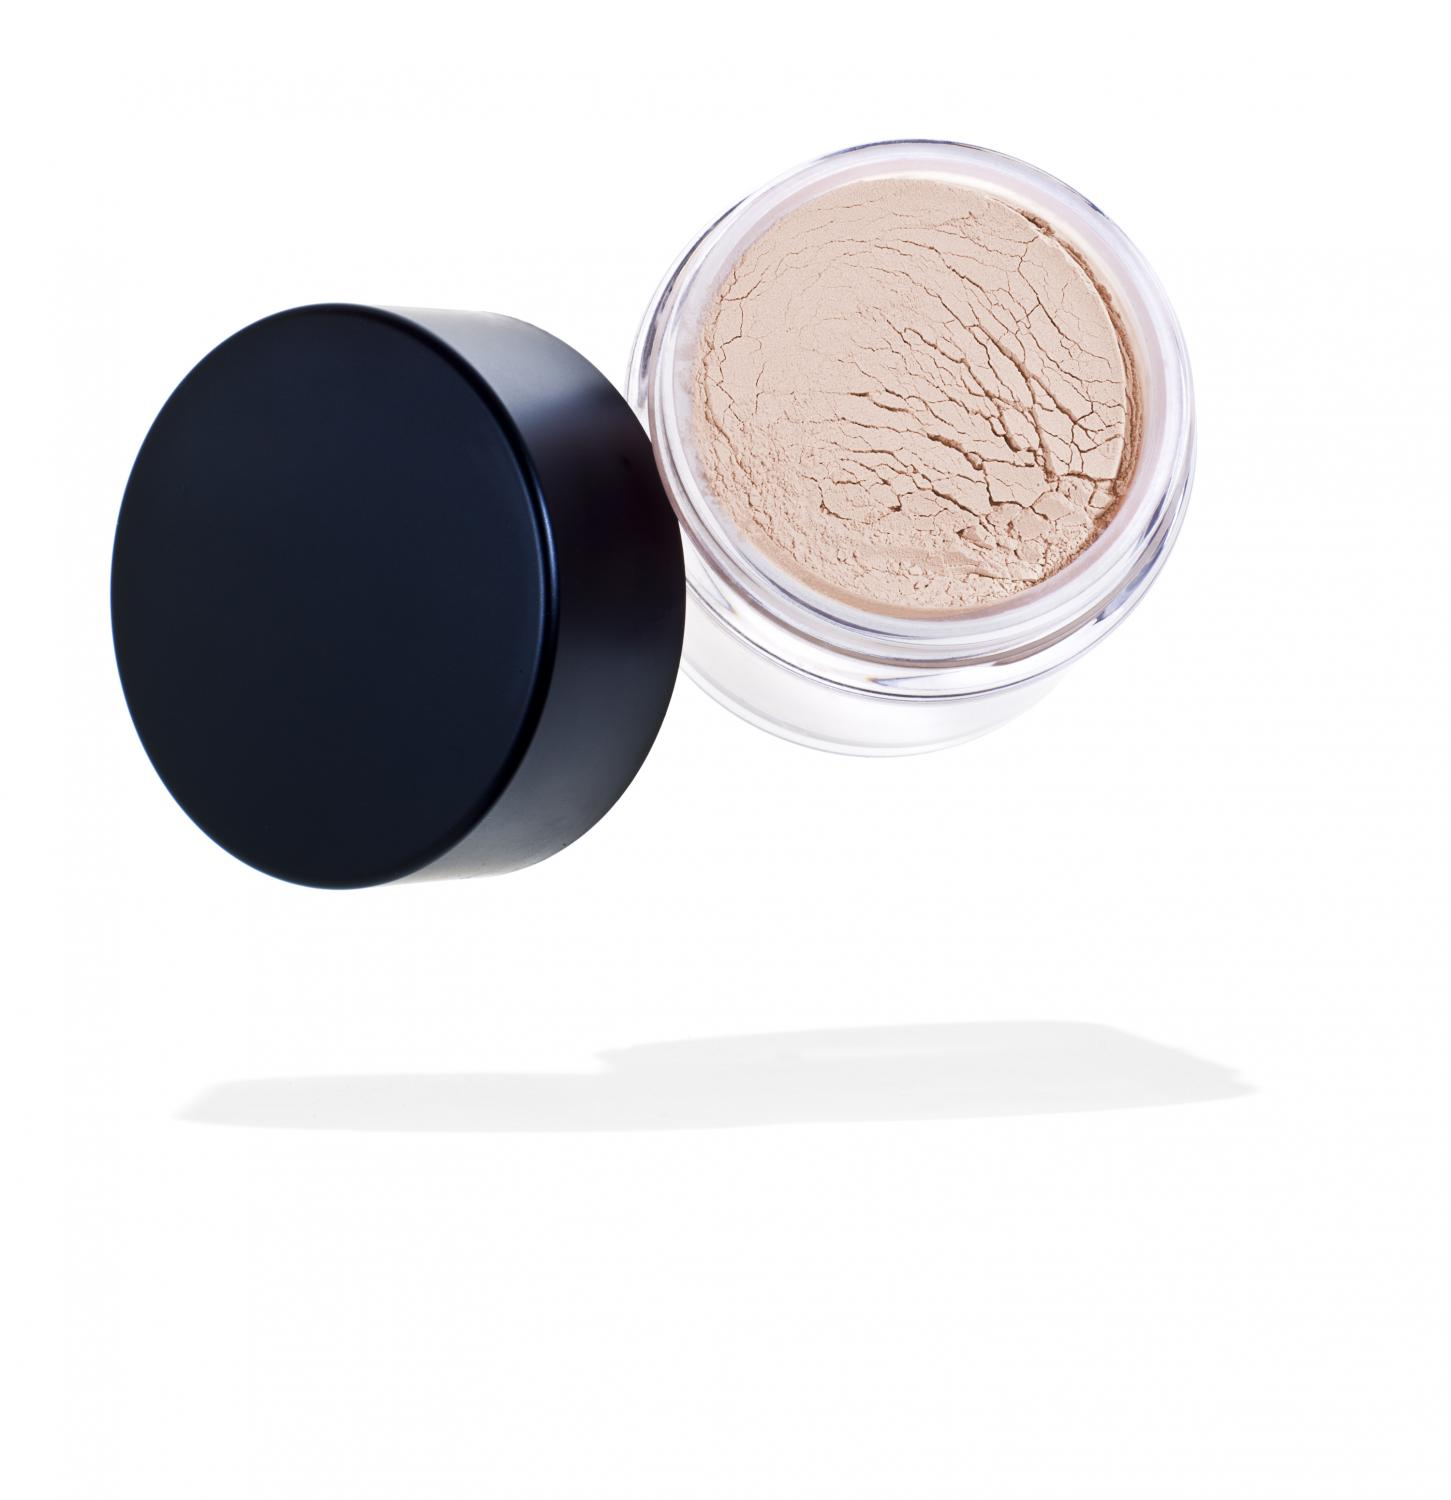 MICRONIZED LOOSE POWDER - COCO MEDIUM